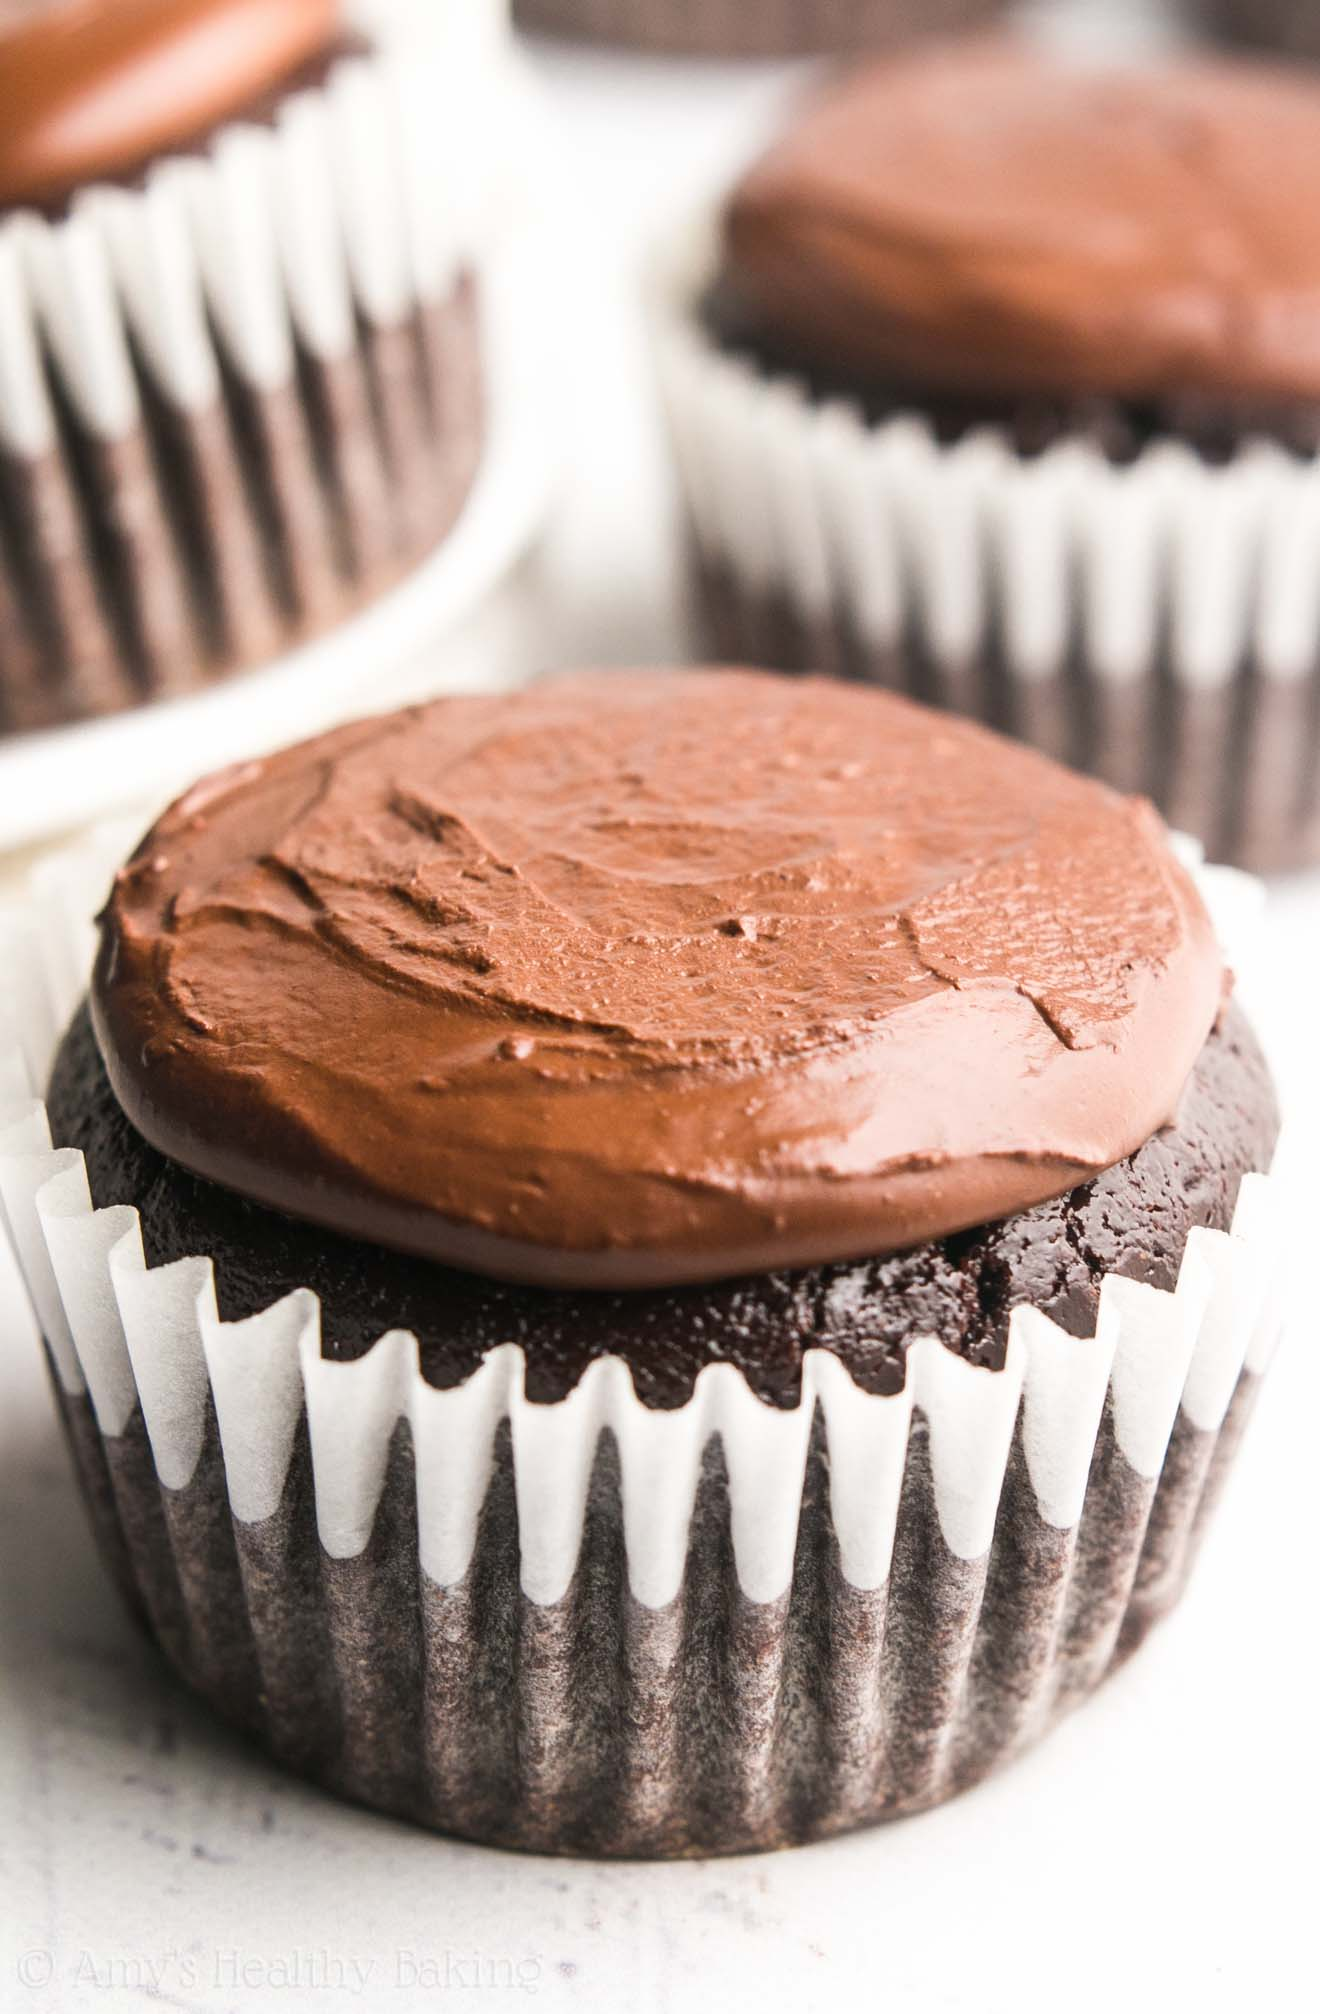 The Ultimate Healthy Dark Chocolate Cupcakes | Amy's Healthy Baking